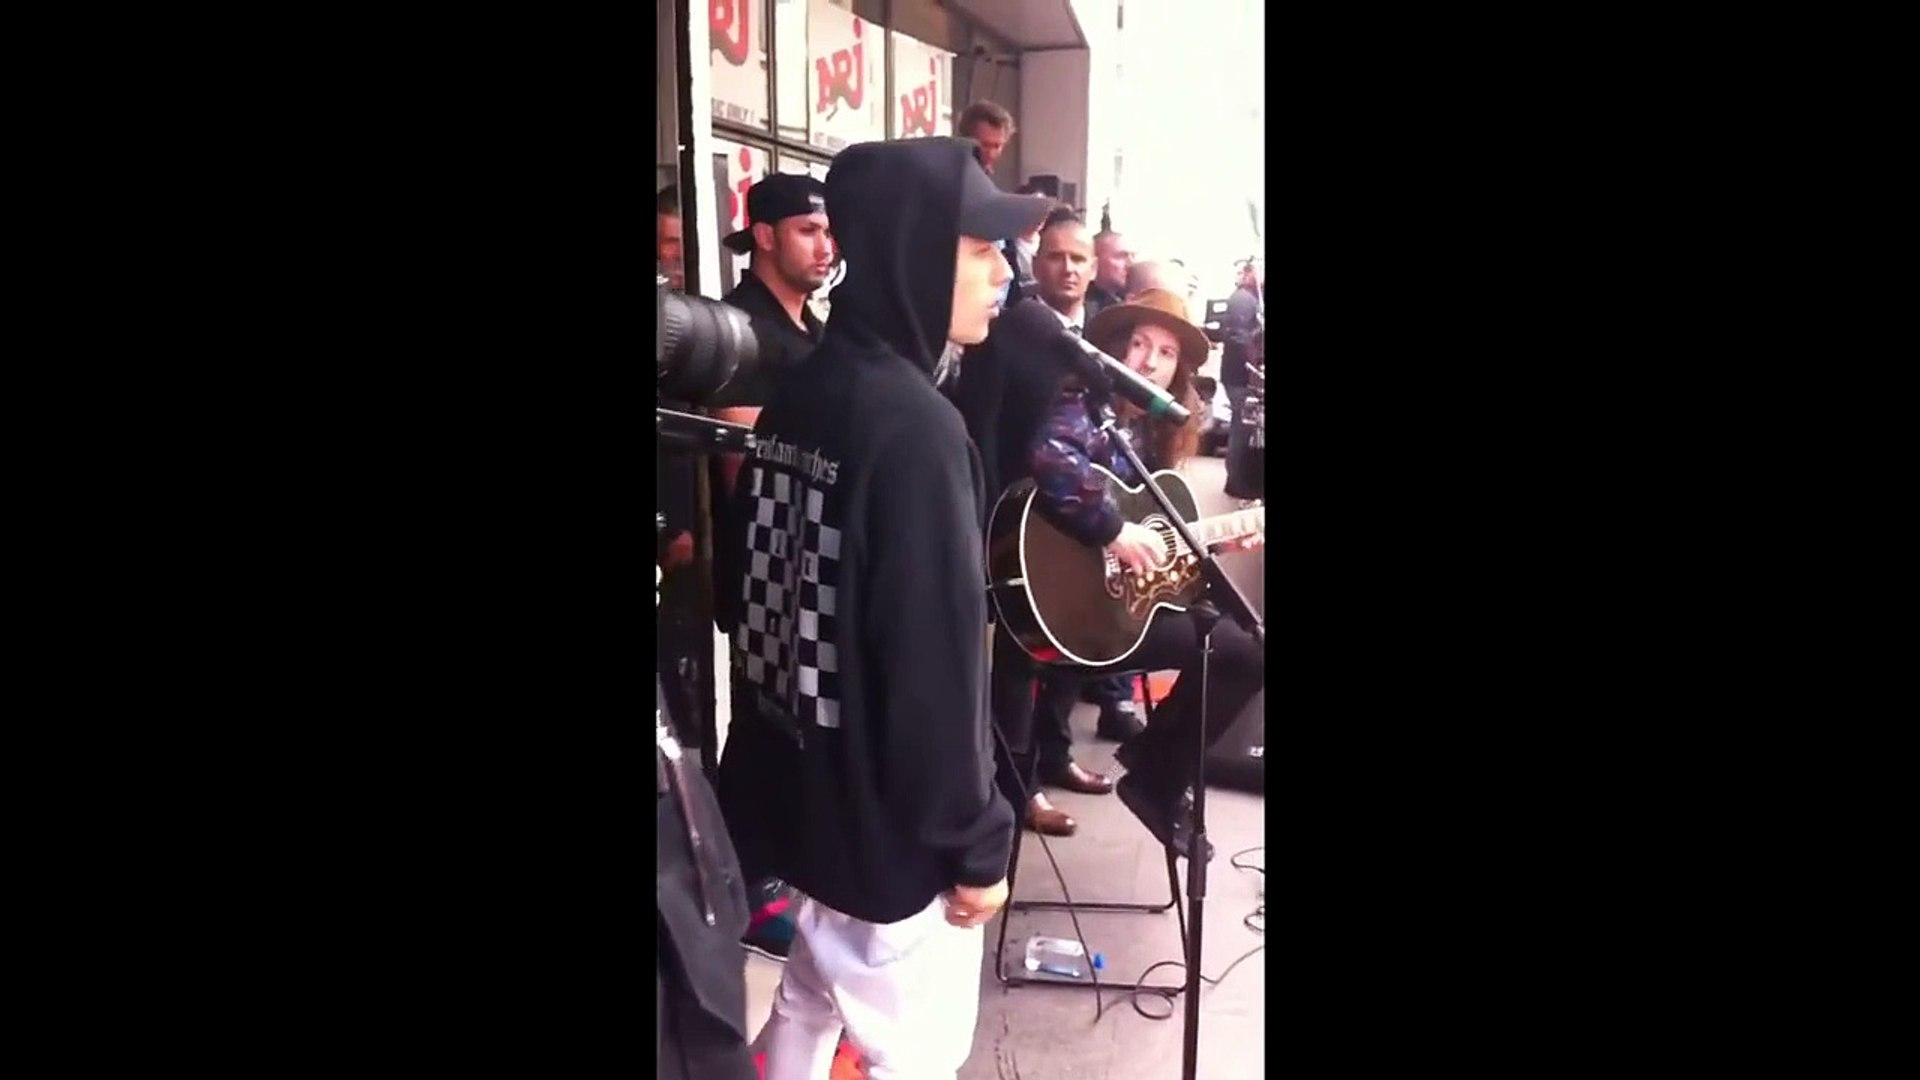 Justin Bieber singing What Do You Mean acoustically NRJ radio station Paris France September 16 2015